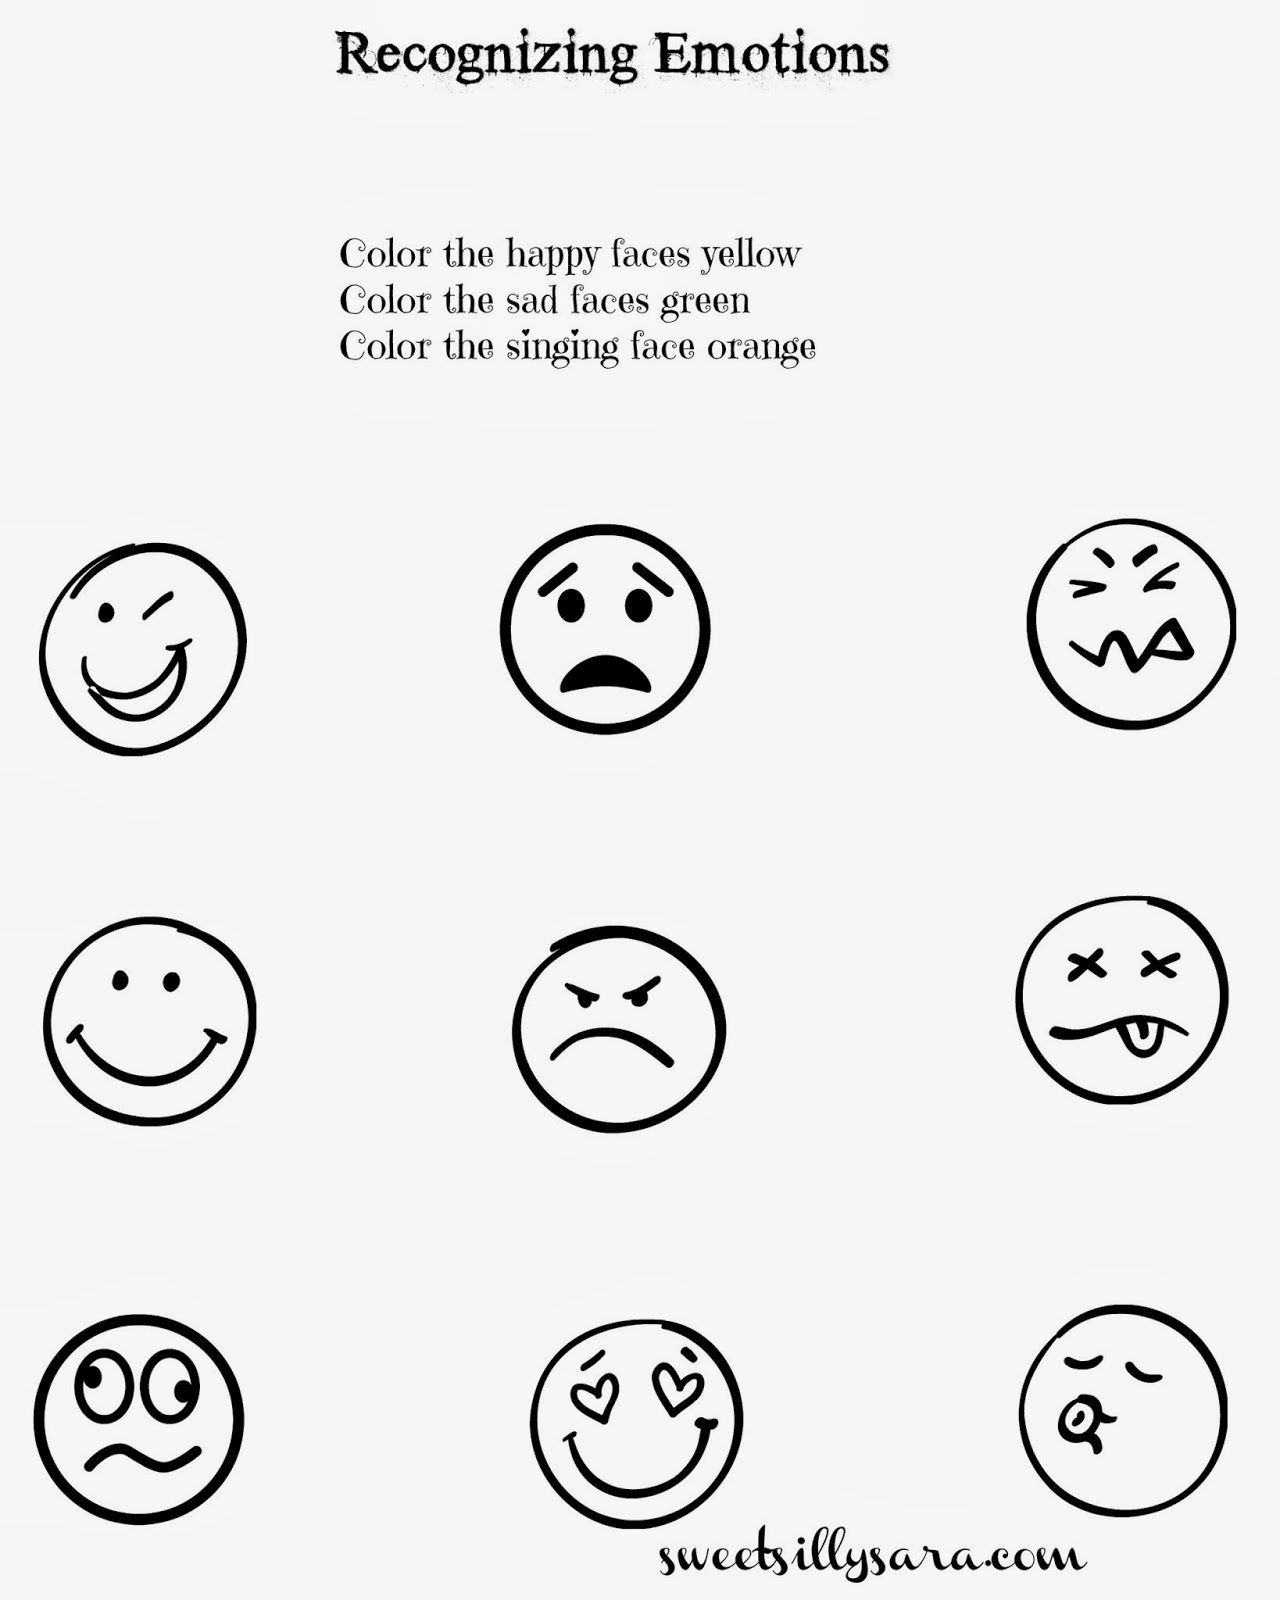 Sweet Silly Sara Recognizing Emotions Worksheet Emotions Worksheet Emotion Worksheet Feelings Worksheet Free preschool feelings worksheets